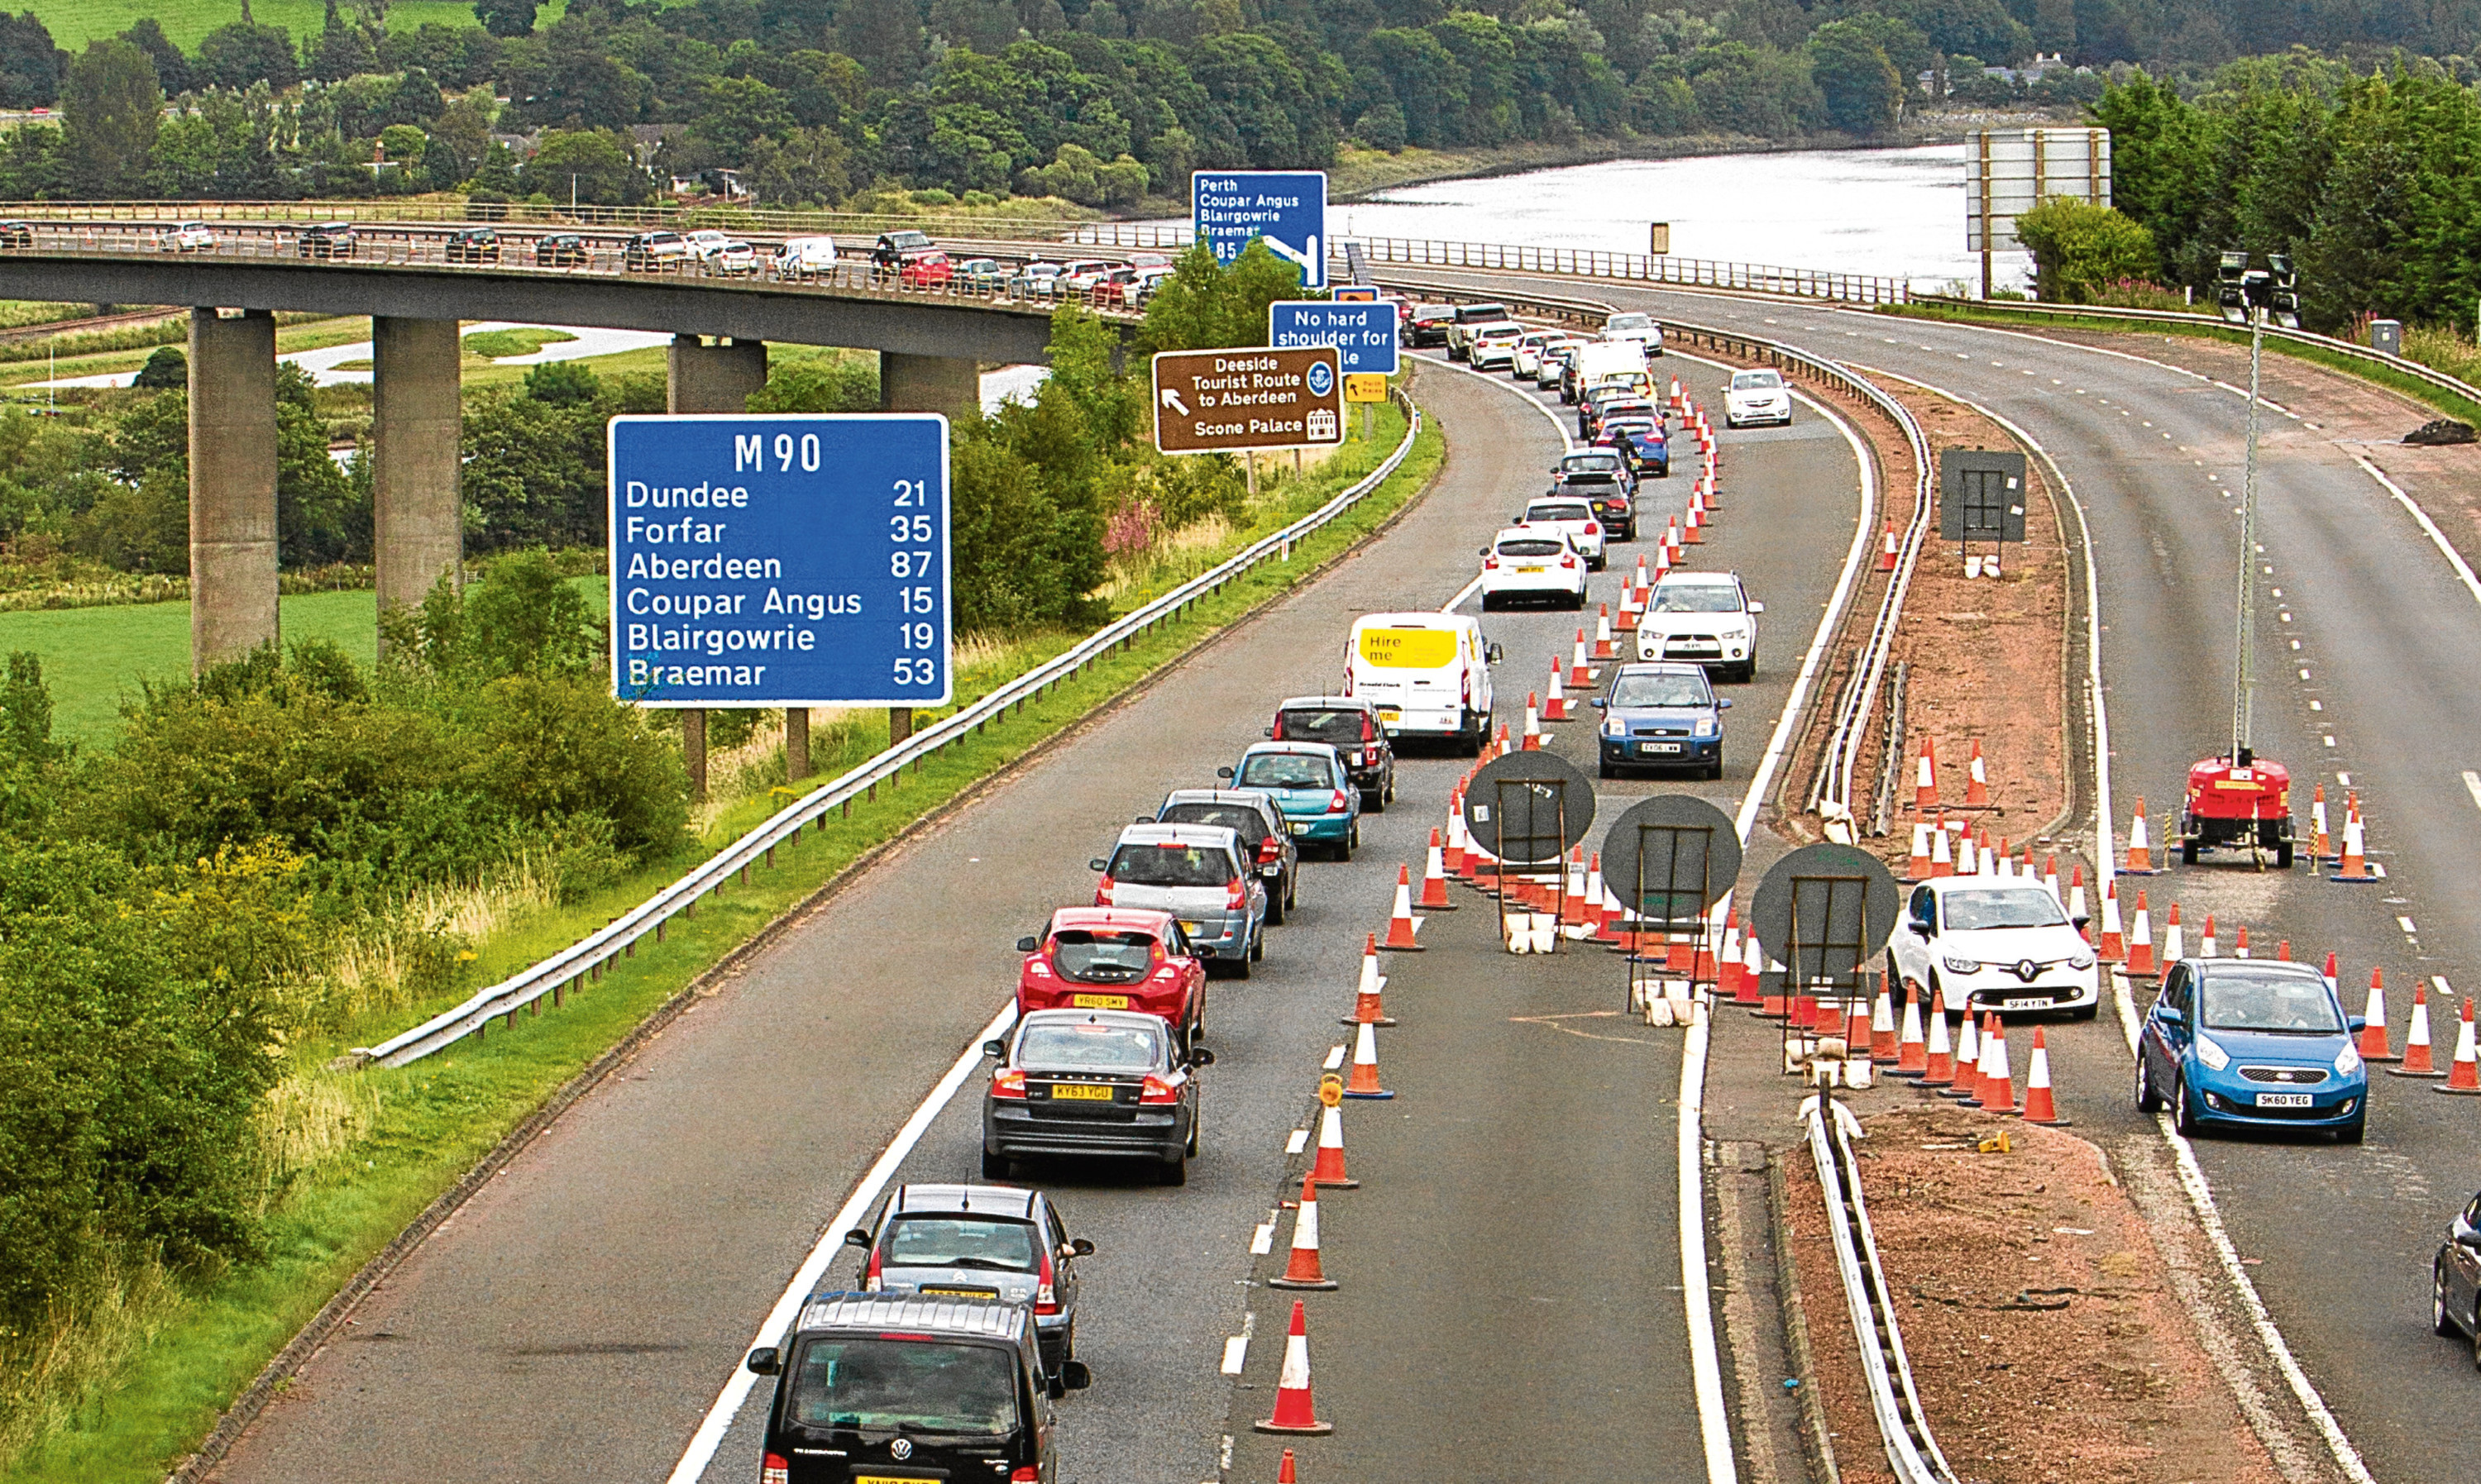 Roadworks at Friarton Bridge by Perth causing major traffic queues.